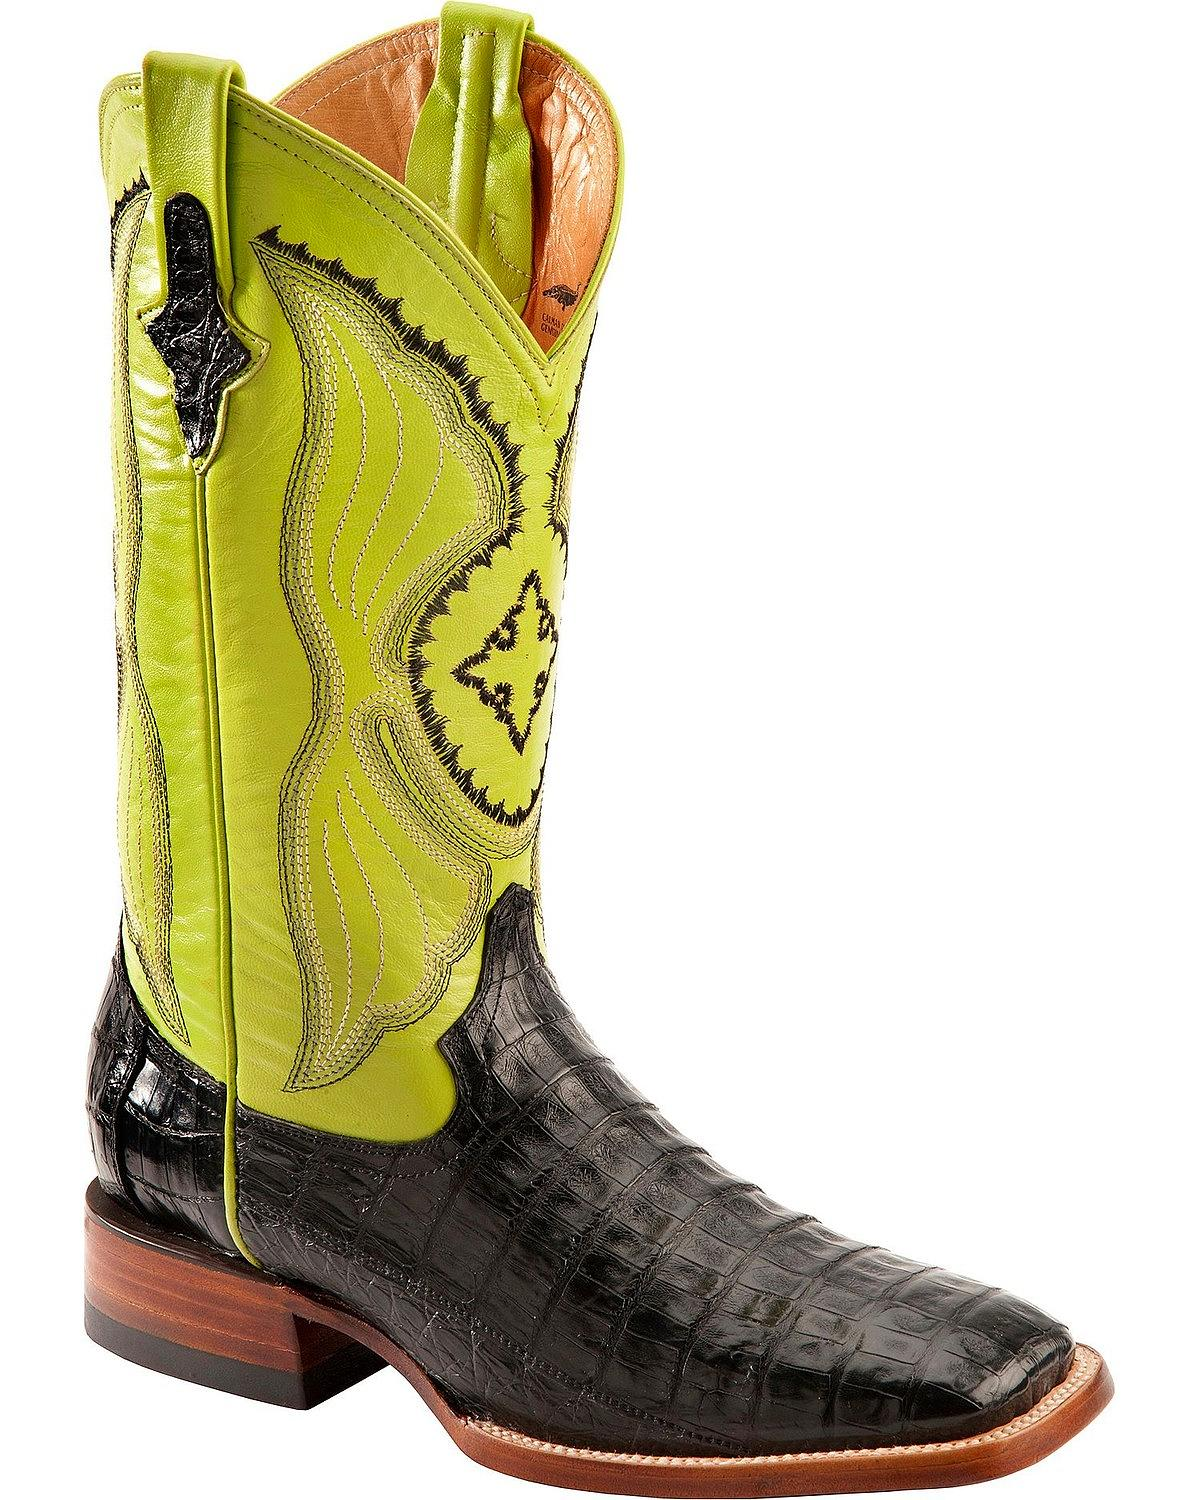 Ferrini Men's Caiman Belly Cowboy Boot Wide Square Toe 1249304 by Ferrini